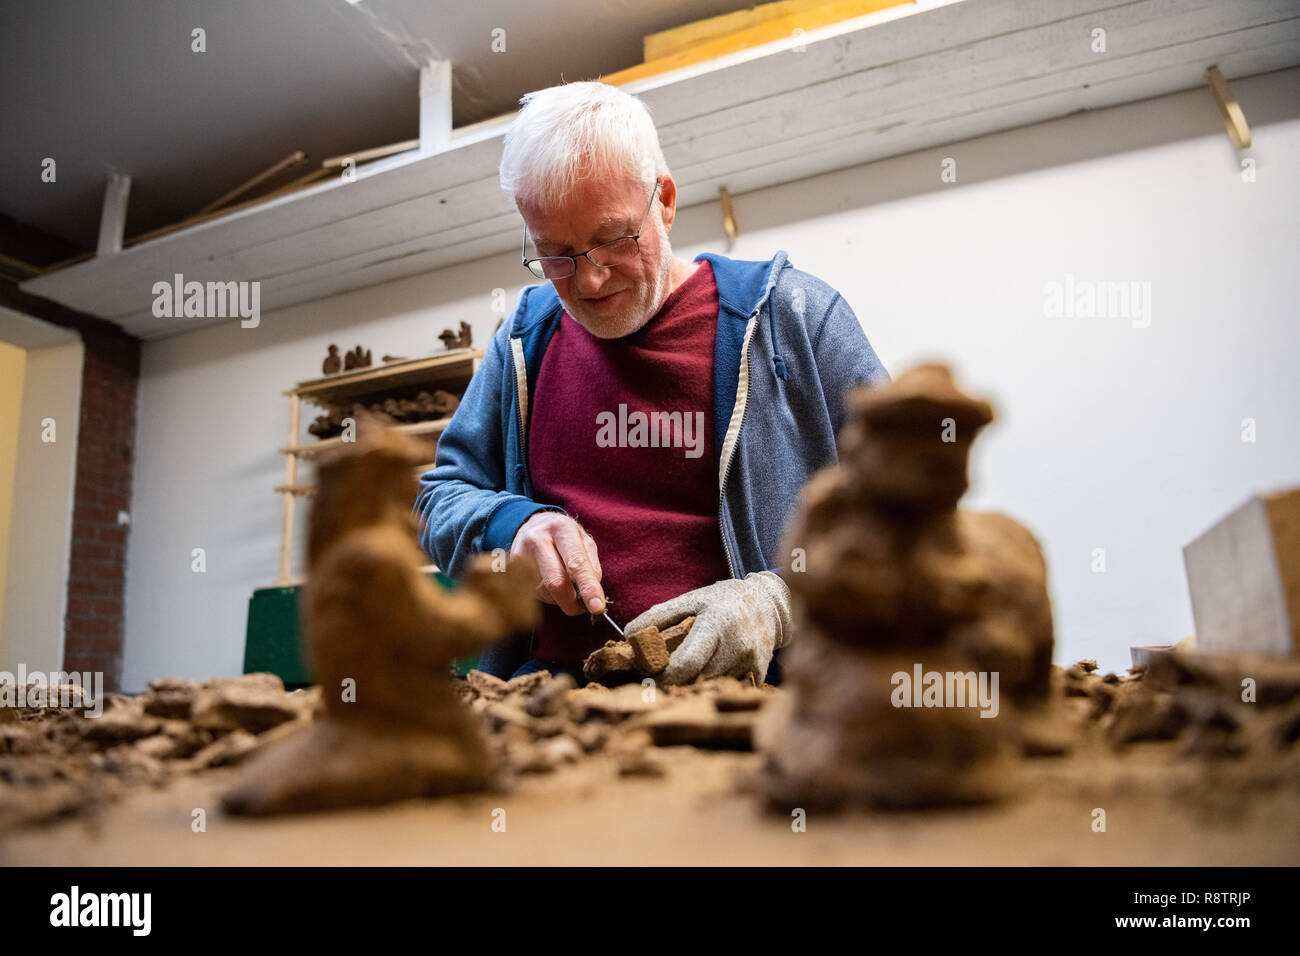 Saterland, Germany. 22nd Nov, 2018. Karl-Heinz Brinkmann carves Christmas figures from peat in his home workshop. The 64 year old Saterland artist works with many materials. But the dried white peat is special: it is 2000 years old. Credit: Mohssen Assanimoghaddam/dpa/Alamy Live News - Stock Image